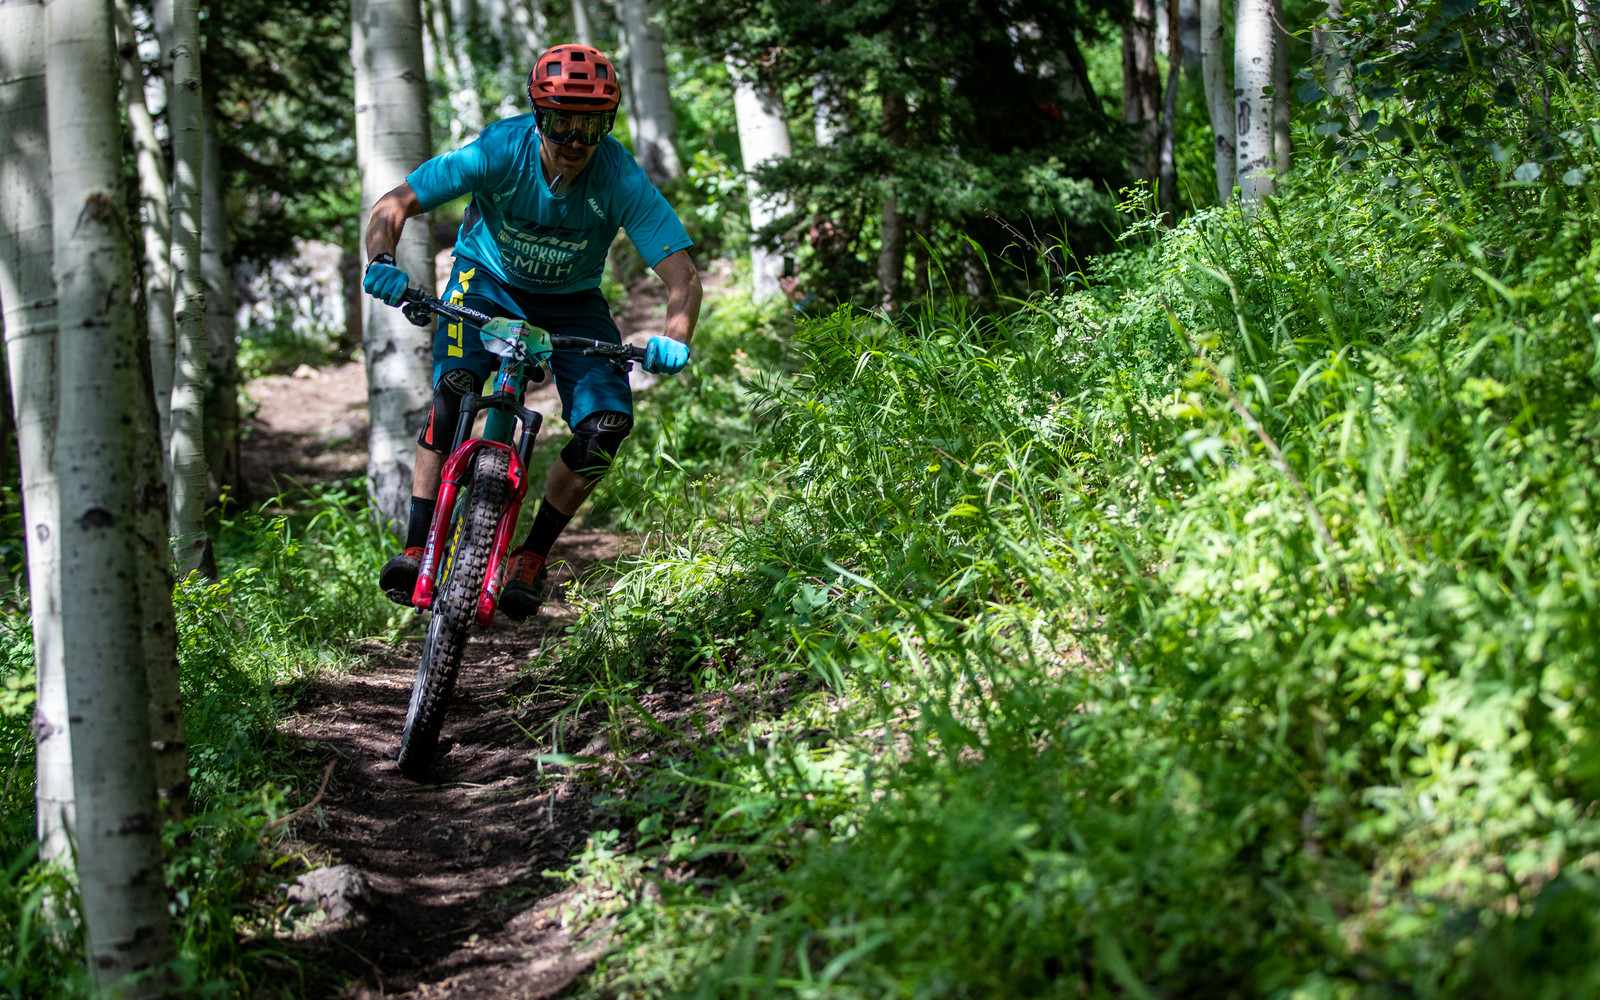 Creator of #followcamfriday, and international star Nate Hills is fresh back from racing in Canada and getting re-acclimated to the Colorado singletrack.